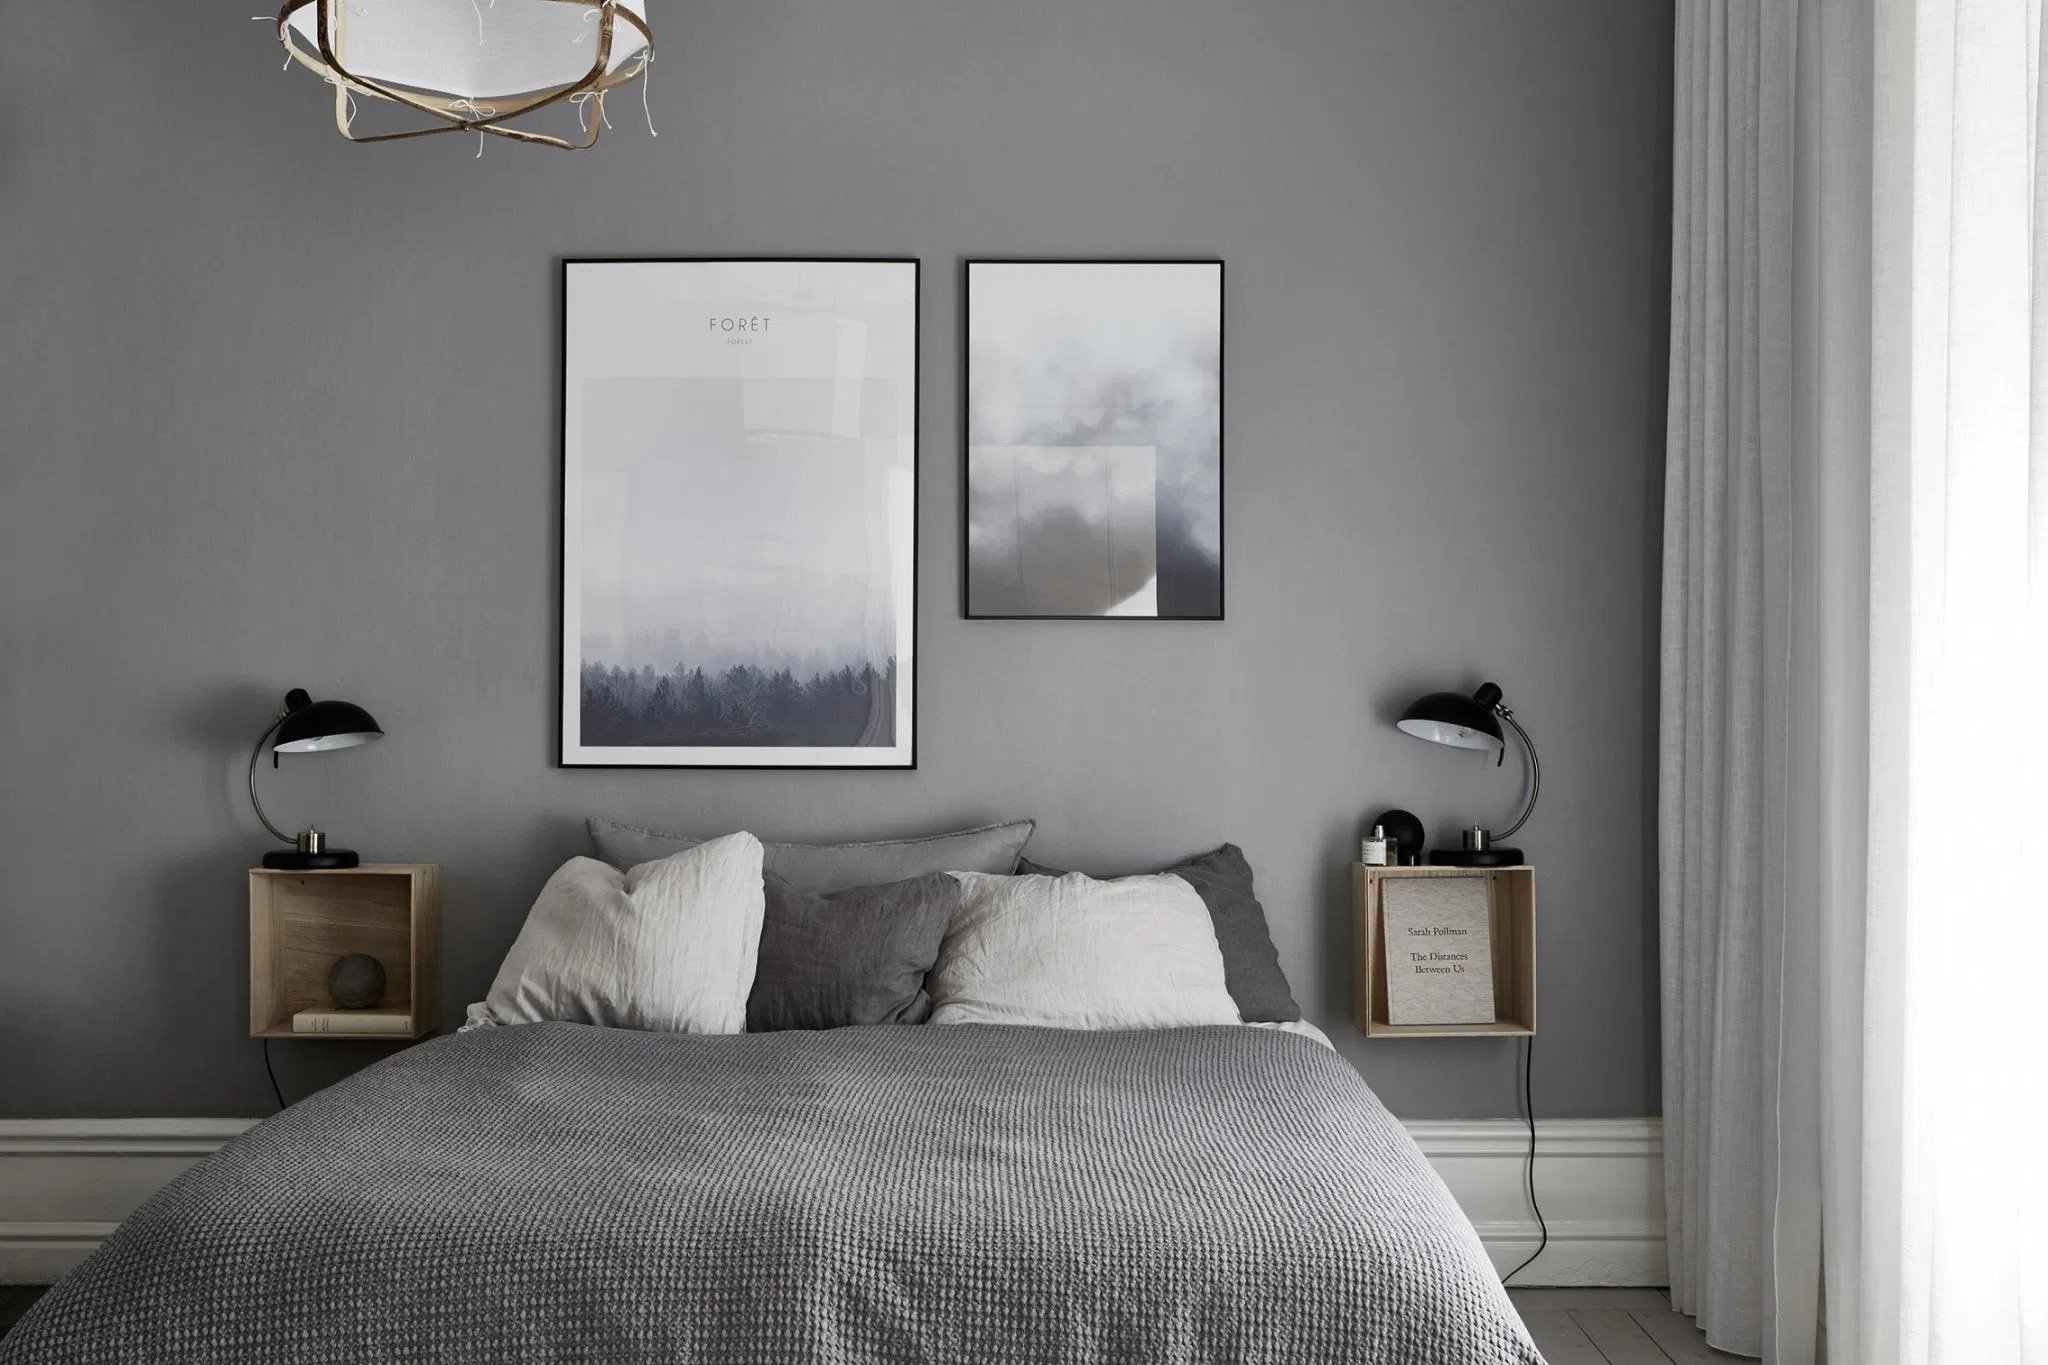 what color should I avoid in the bedroom wall color